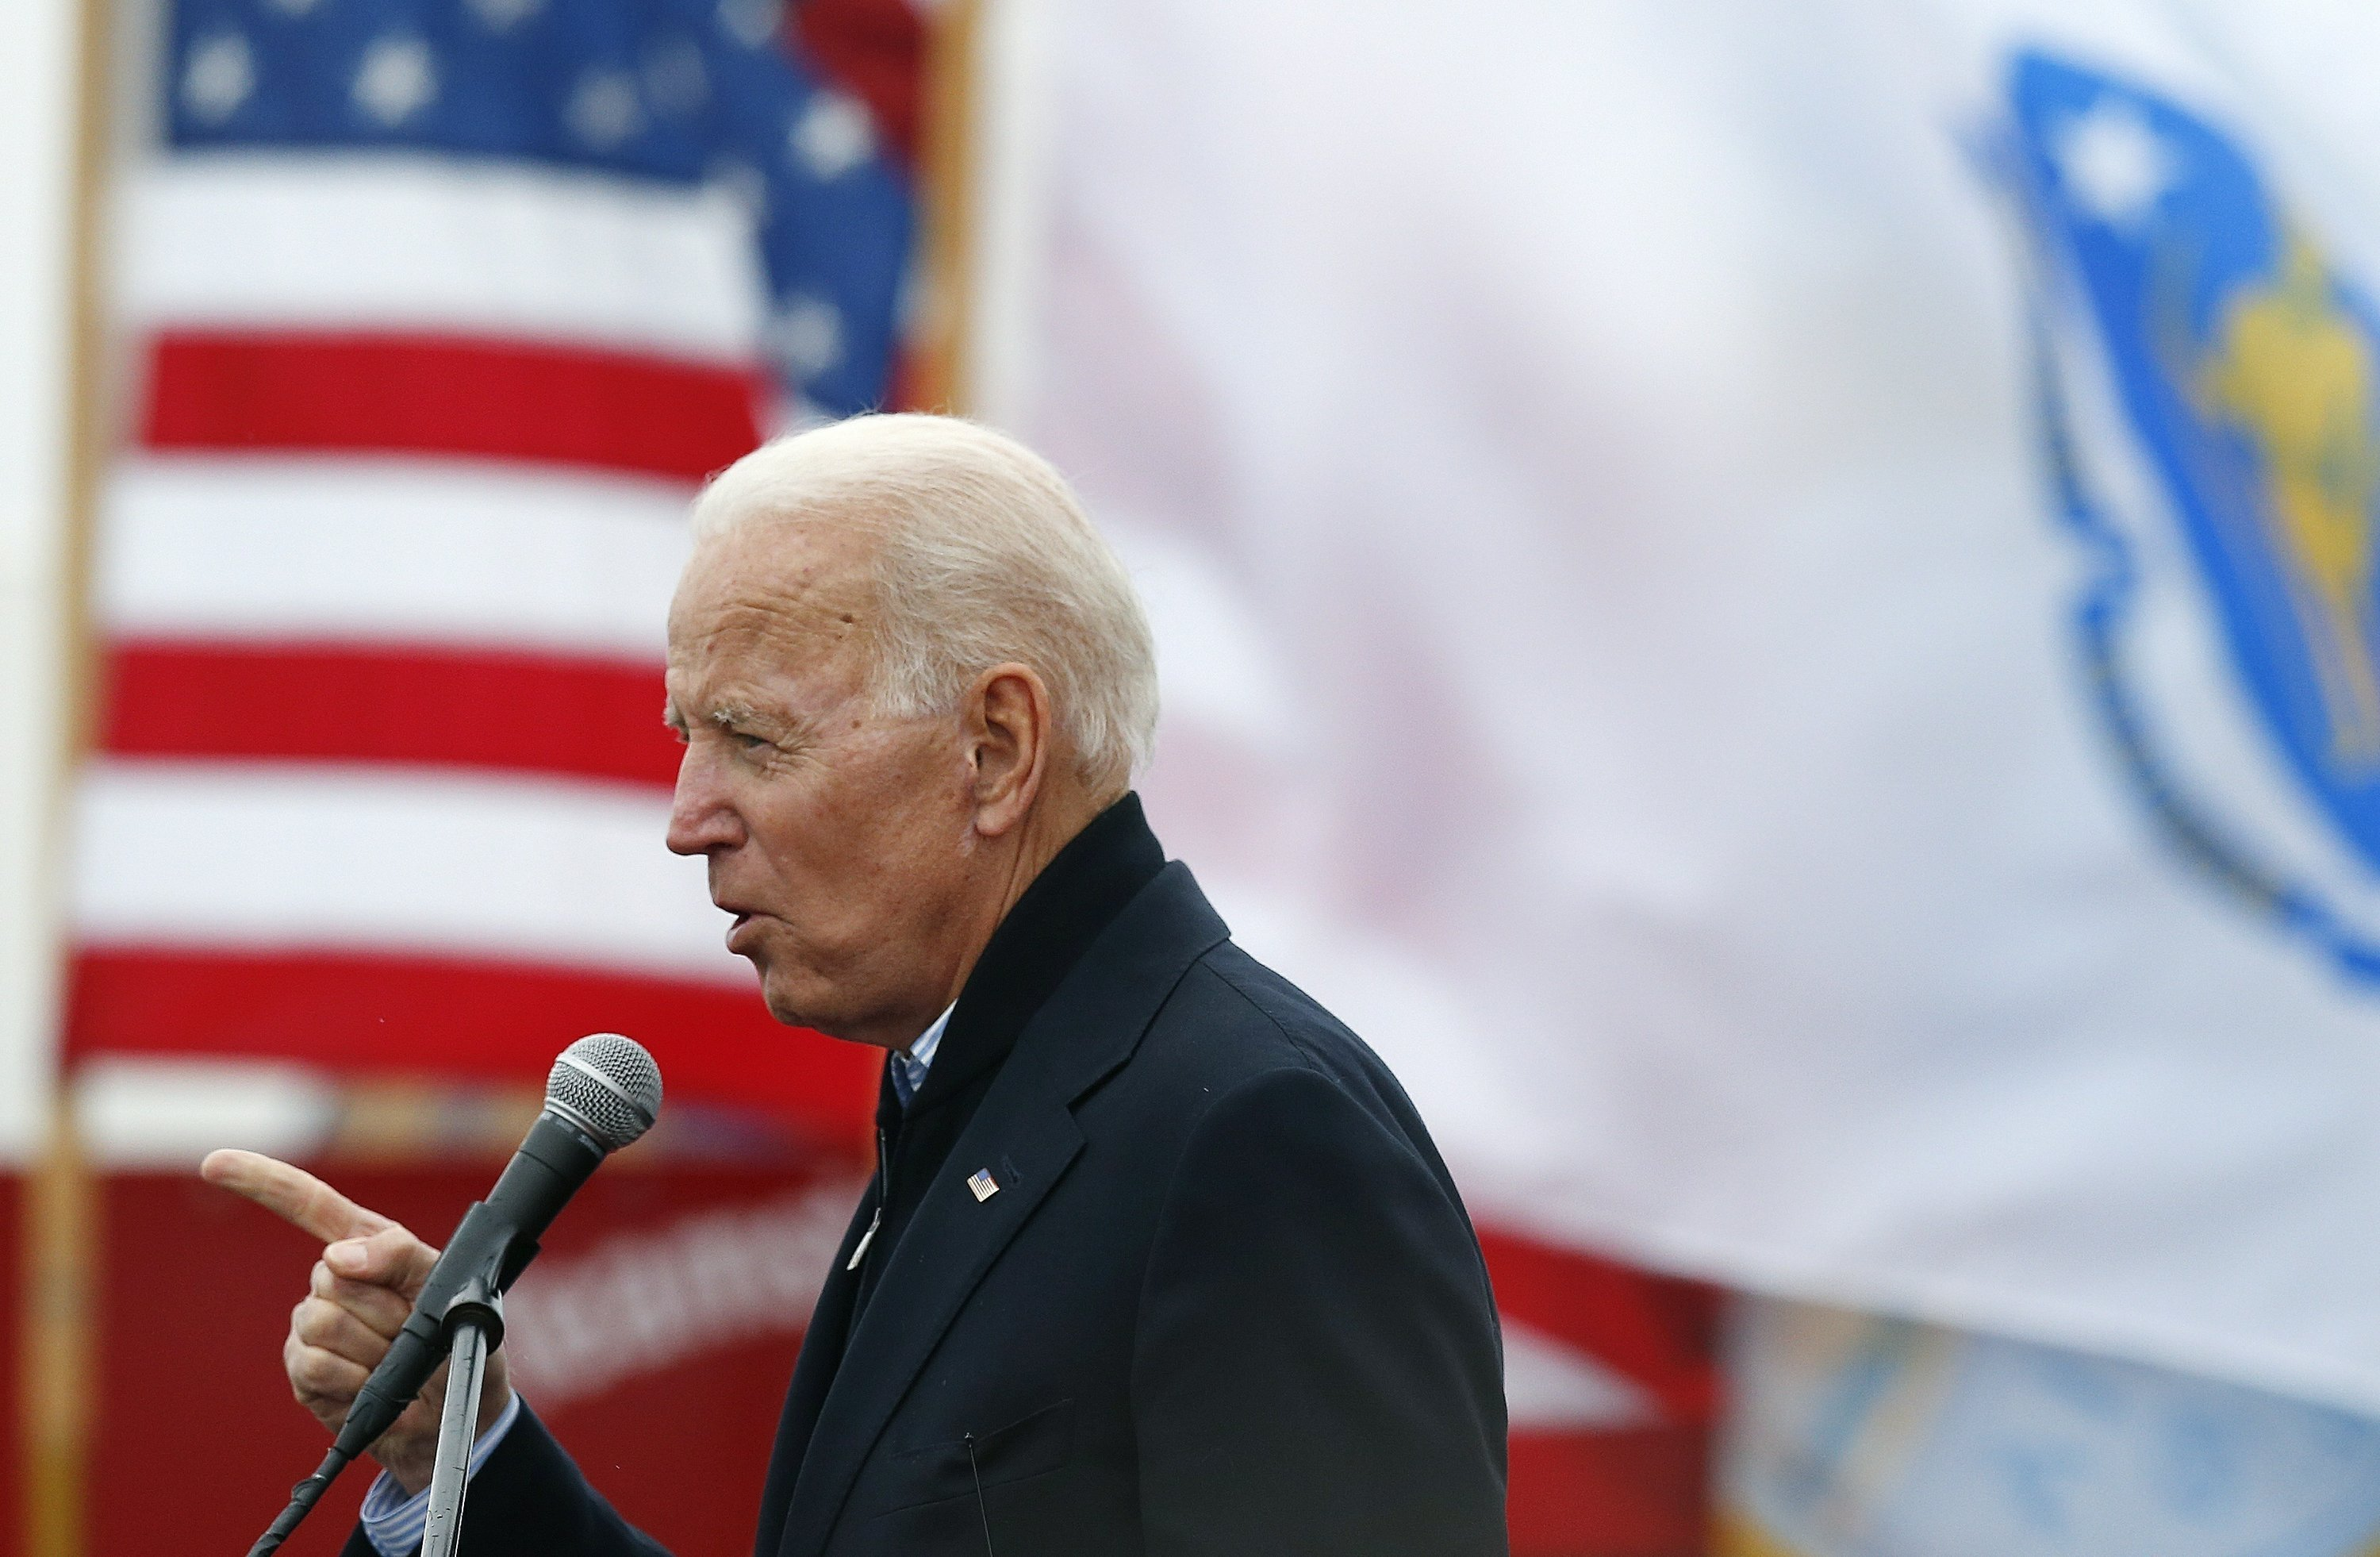 One horrifying day in Virginia led to Biden's big 'yes'